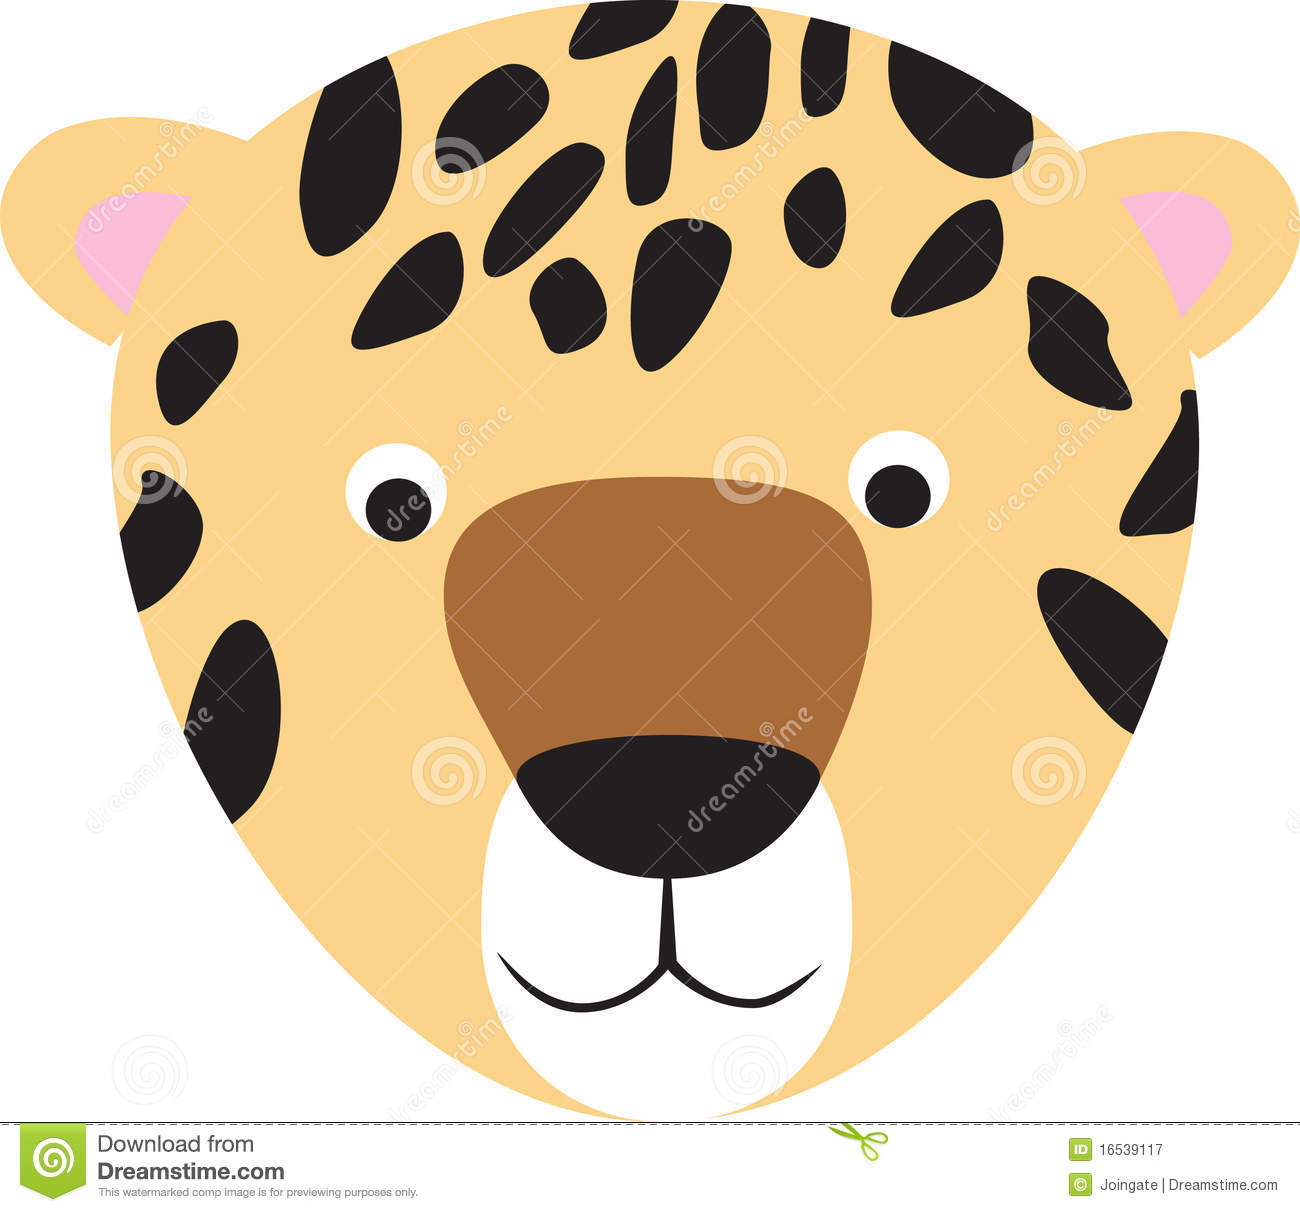 Leopard Or Cheetah Cartoon Face Royalty Free Stock Photography Image